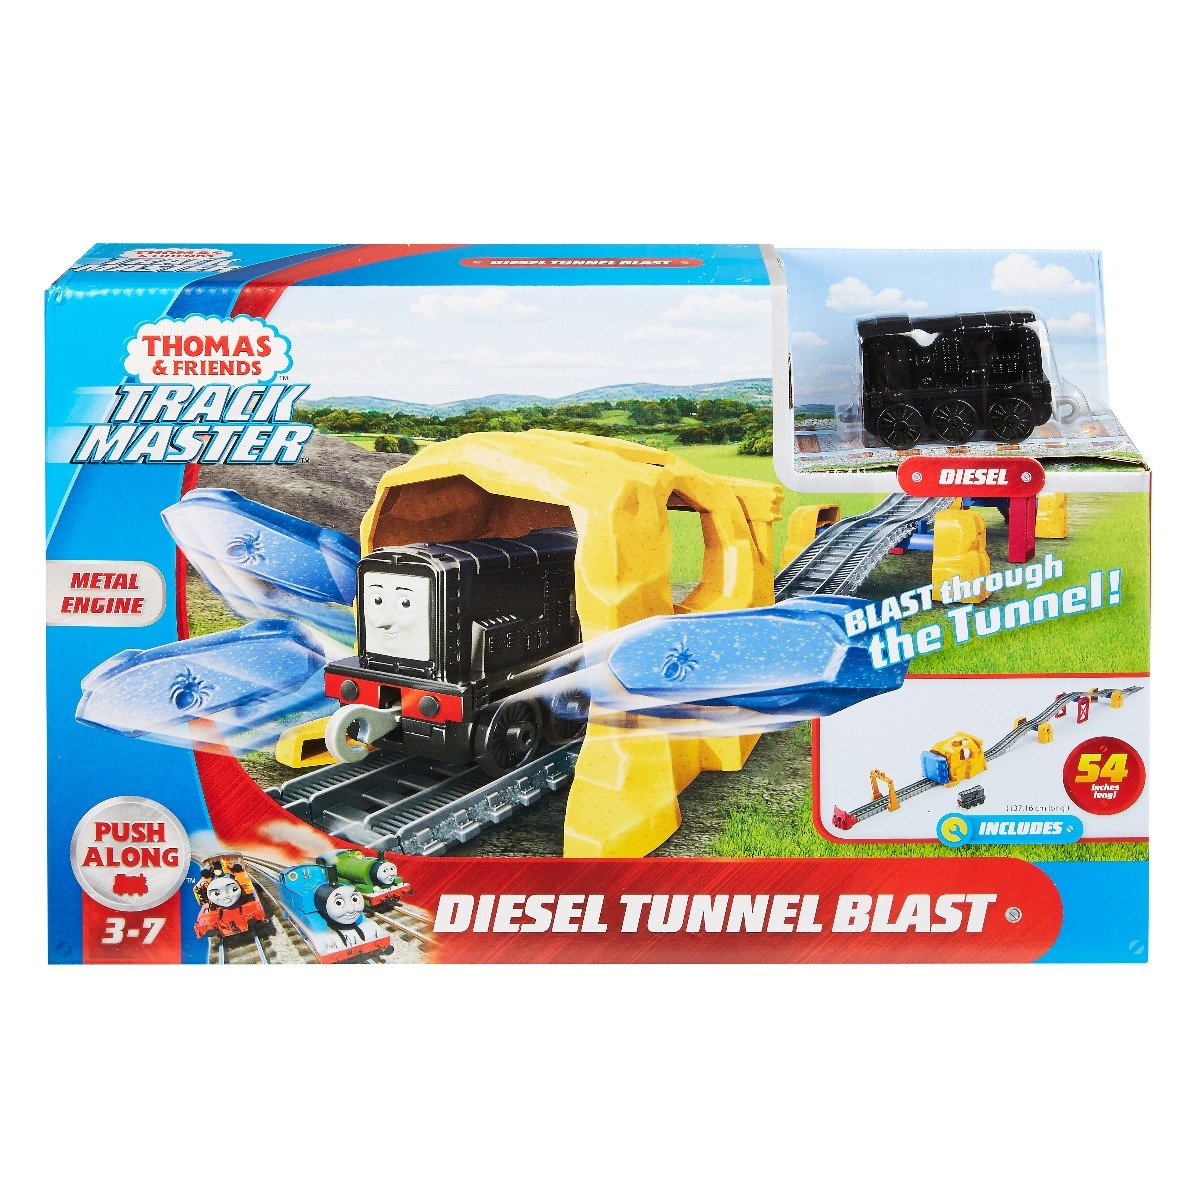 Set de joaca Thomas and Friends, Explozie in tunel